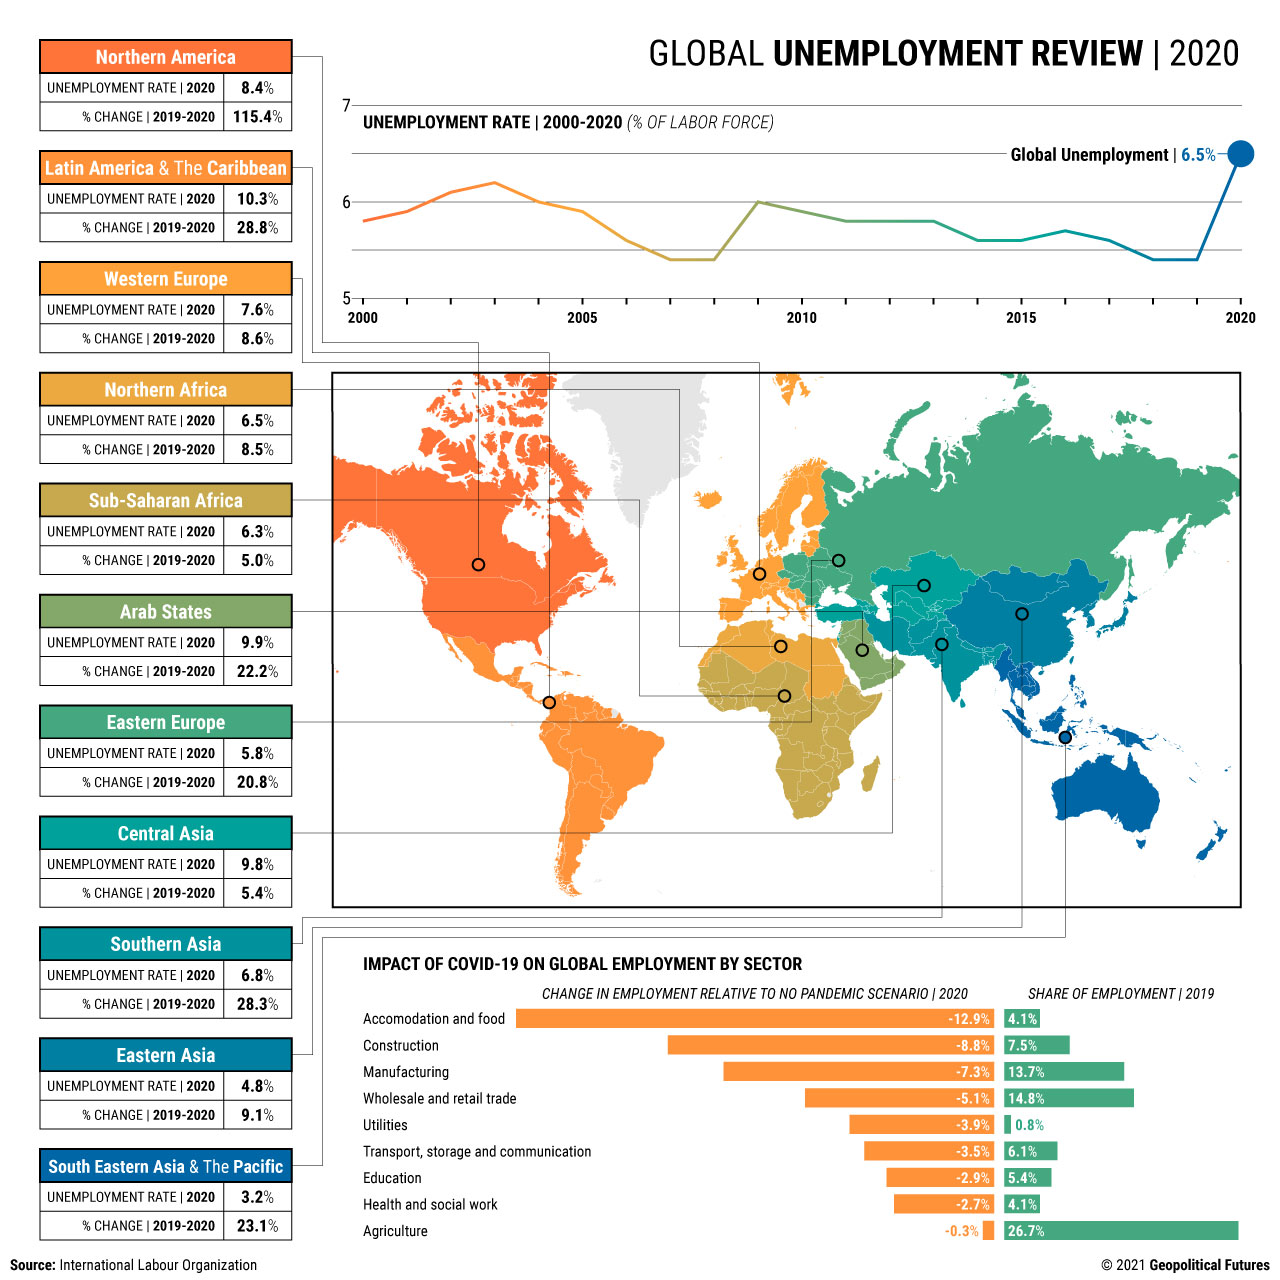 Global Unemployment Review | 2020